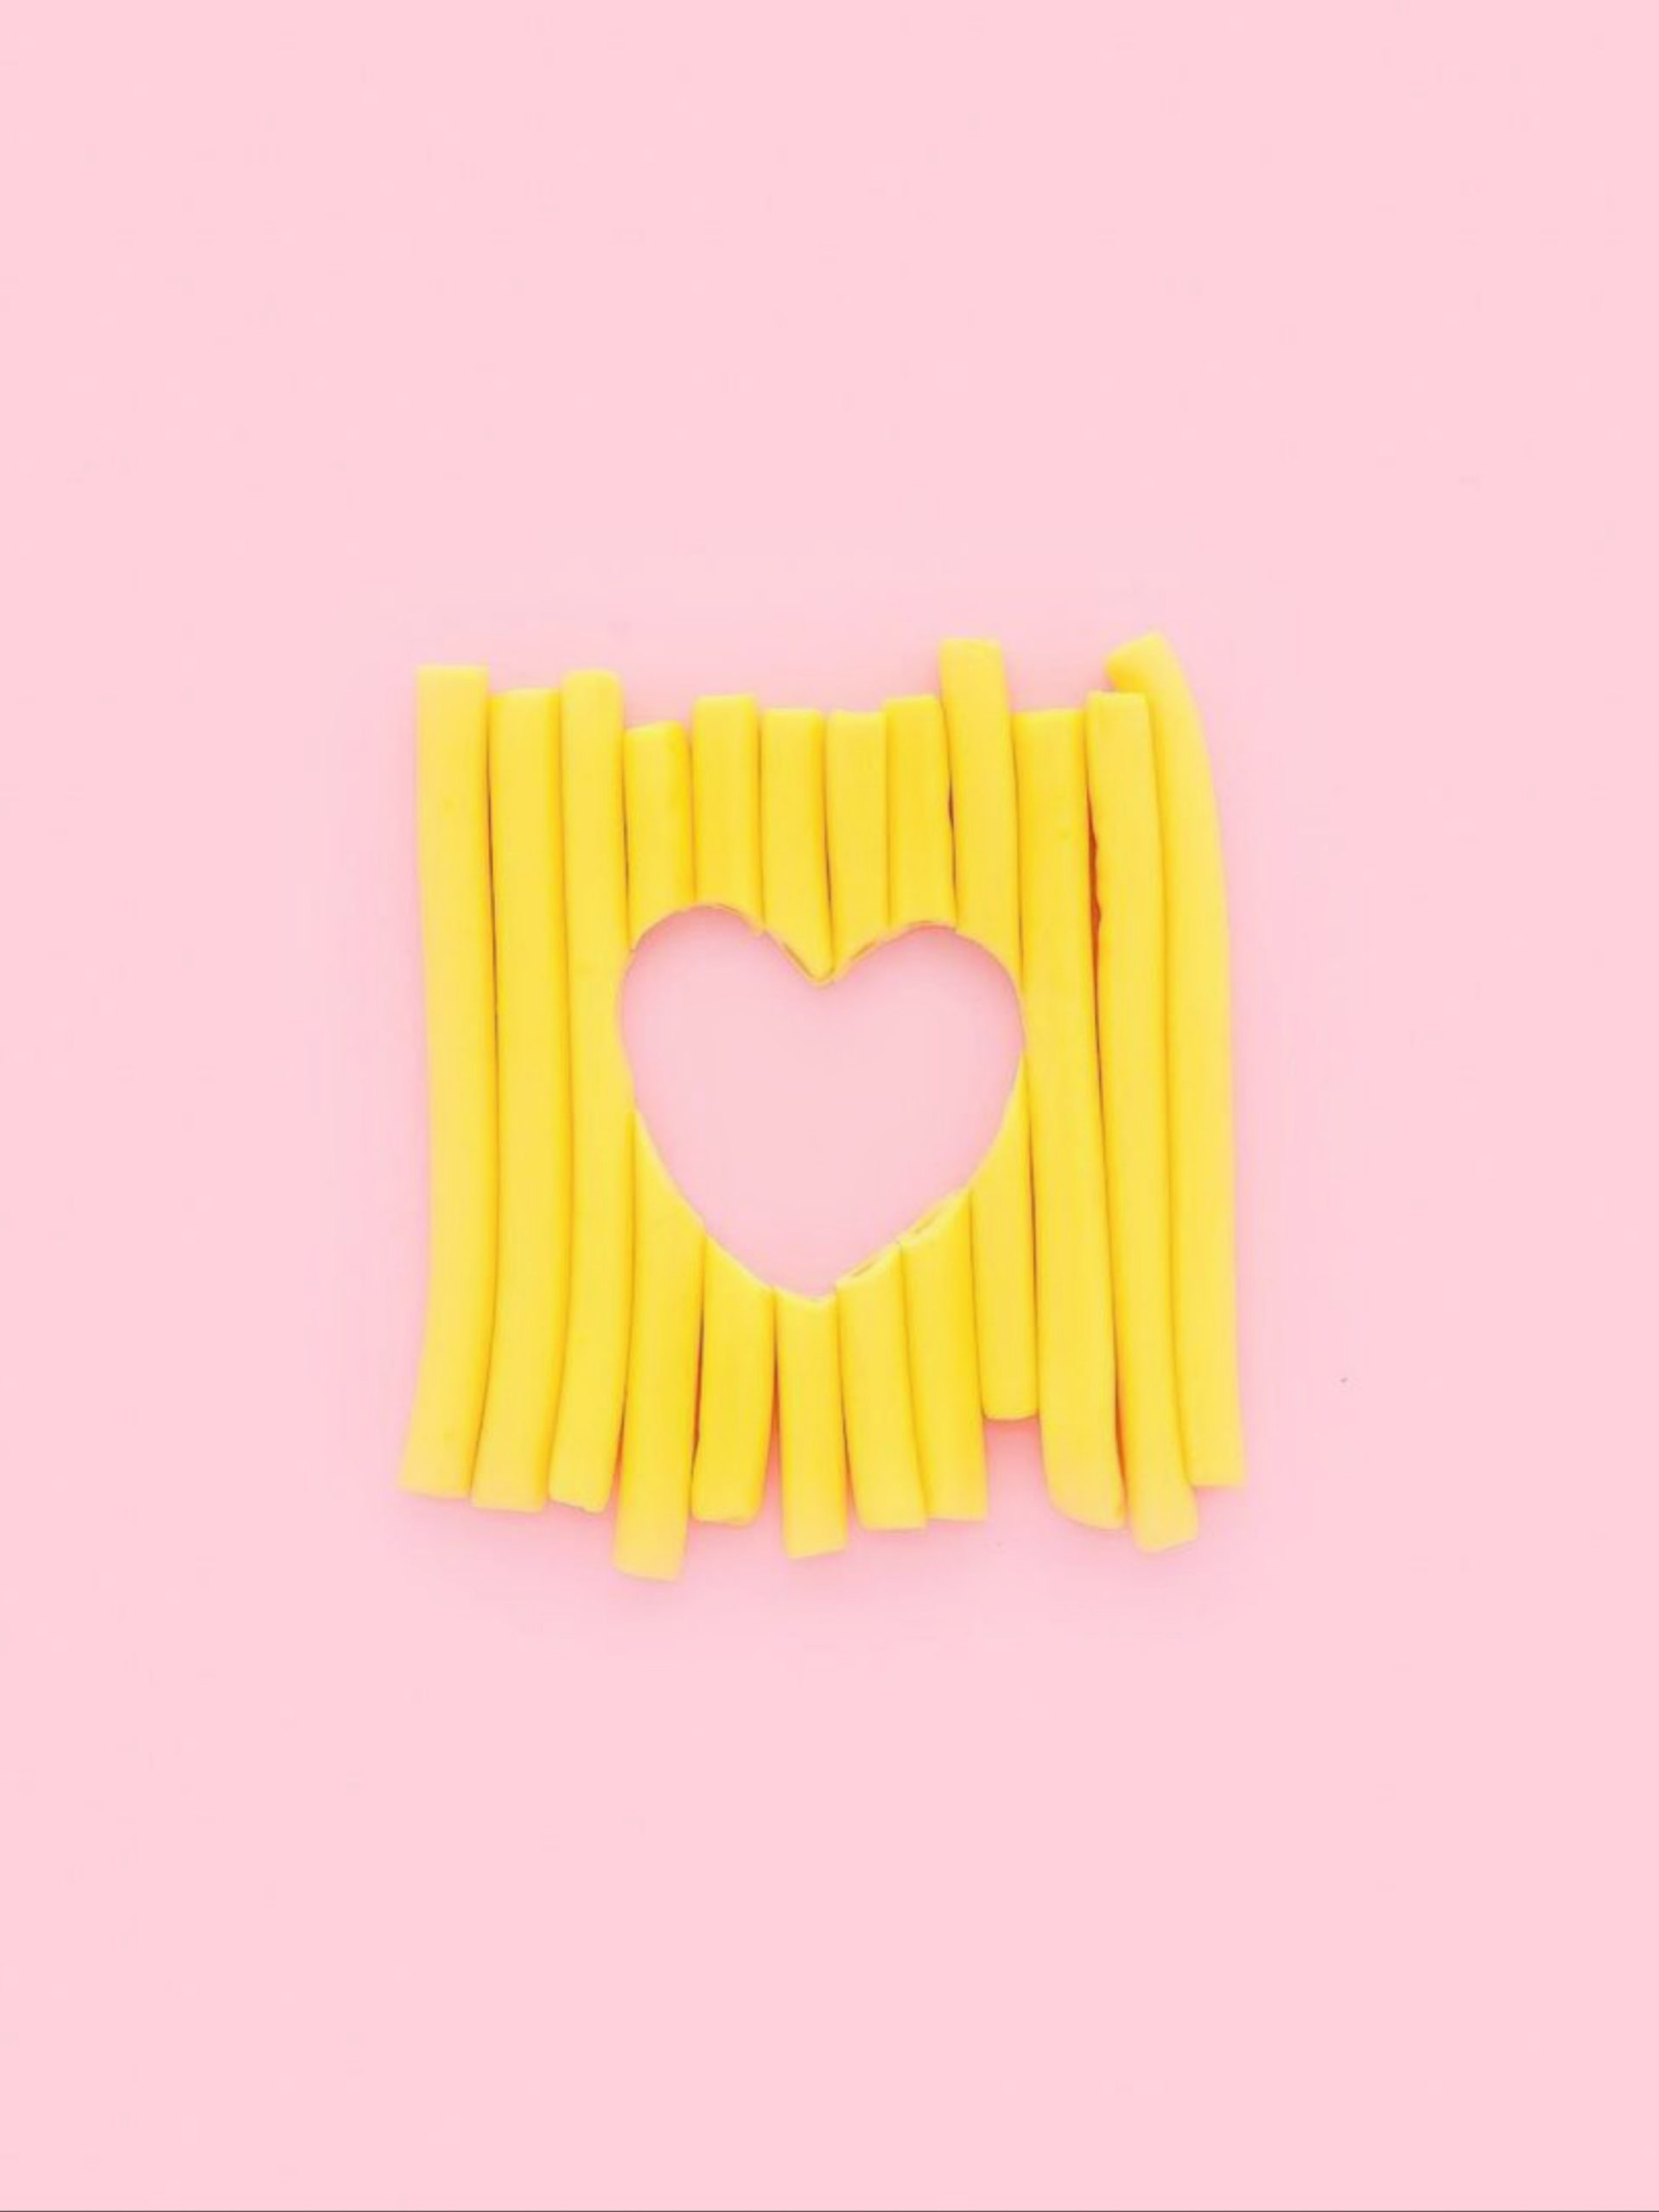 Heart shape made with yellow sticks